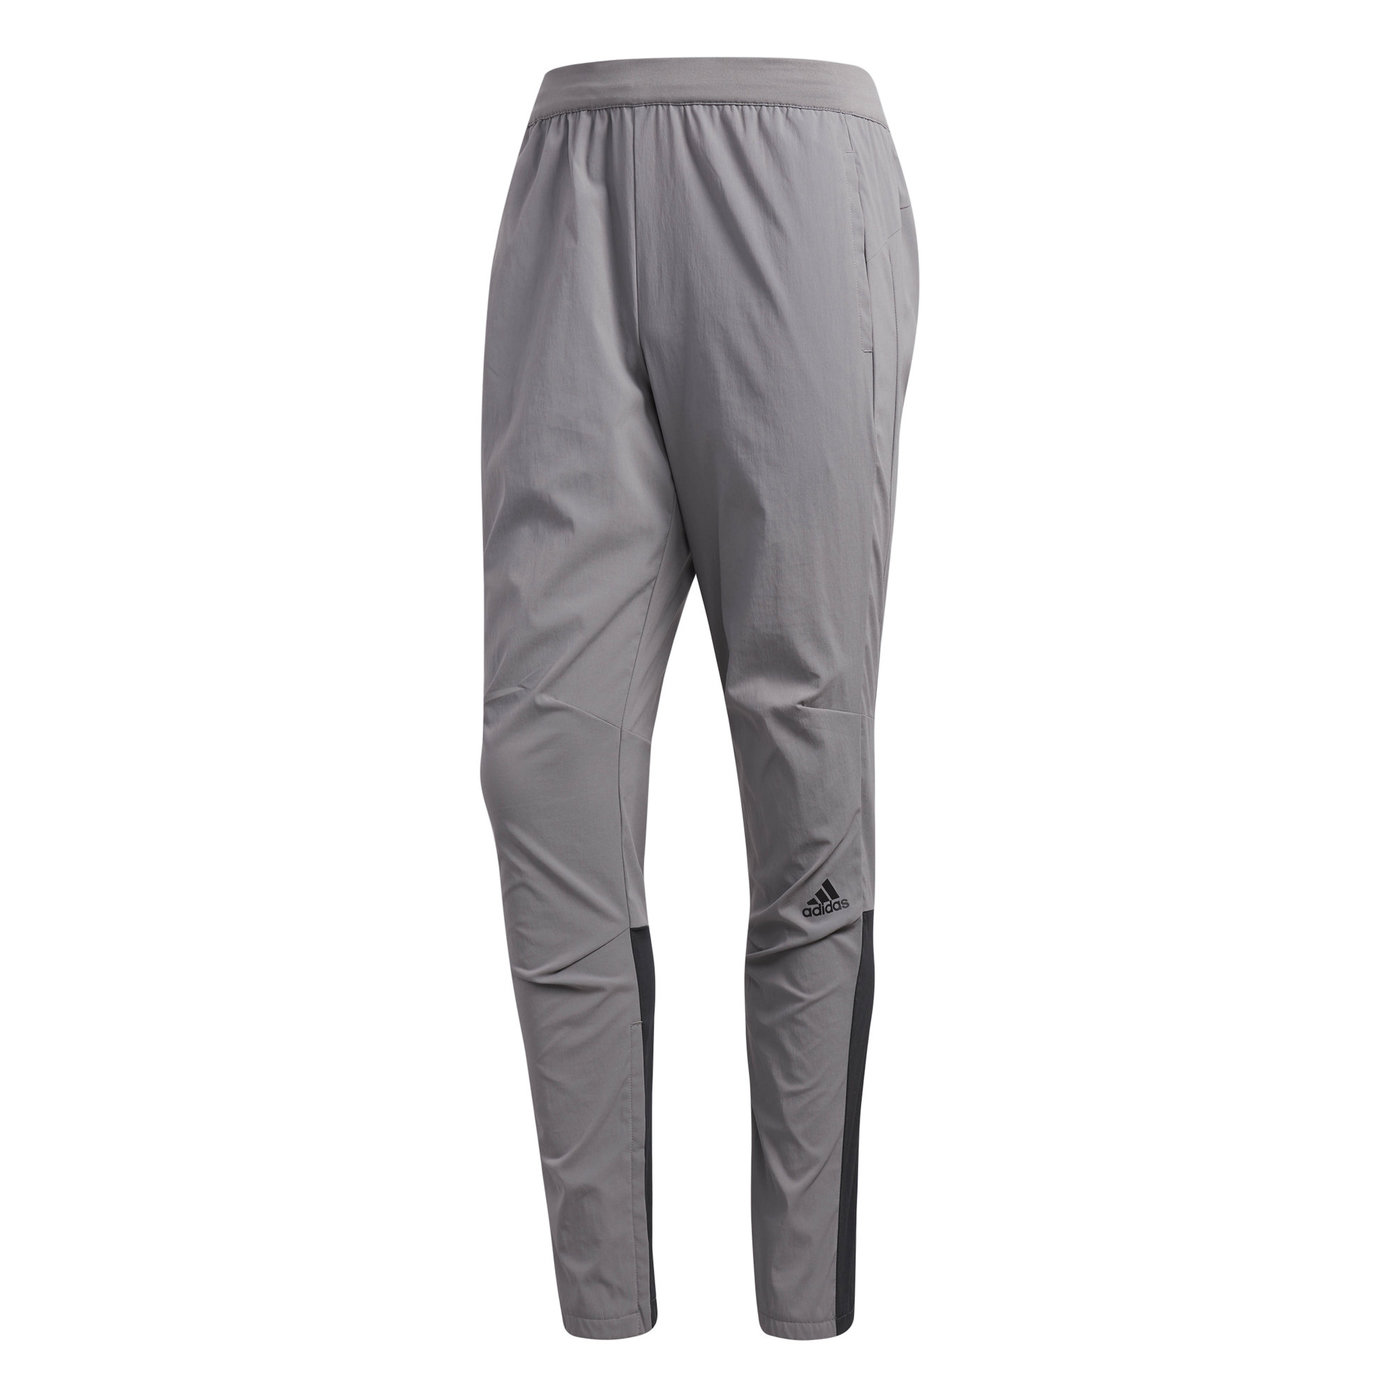 ADIDAS SPORT ID WOVEN PANT MEN'S